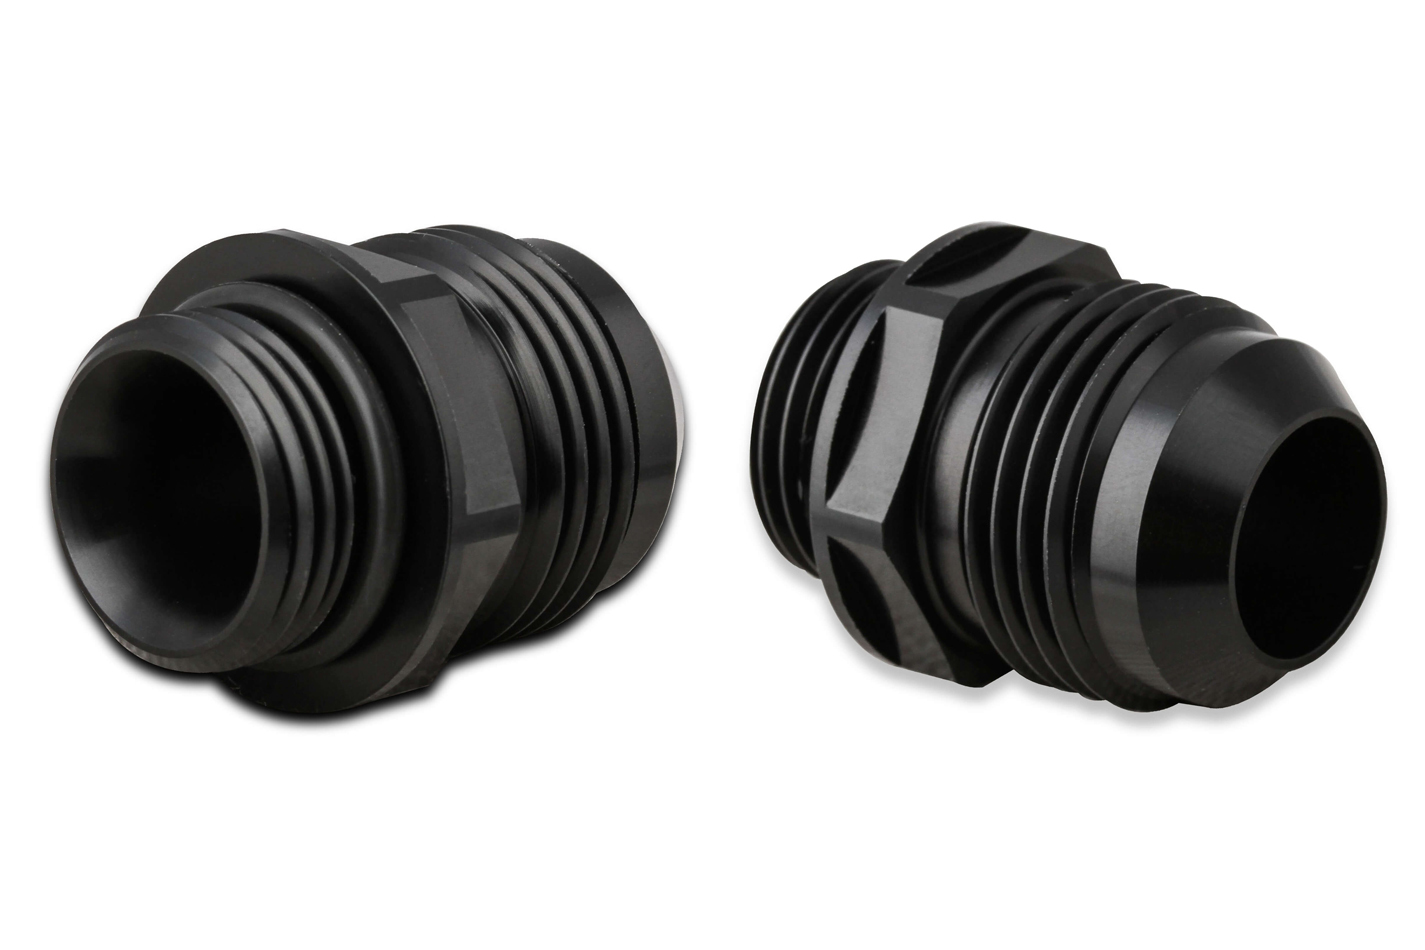 Earls AT585112ERL Fitting, Adapter, Straight, 12 AN Male to 10 AN Male O-Ring, Aluminum, Black Anodized, Pair